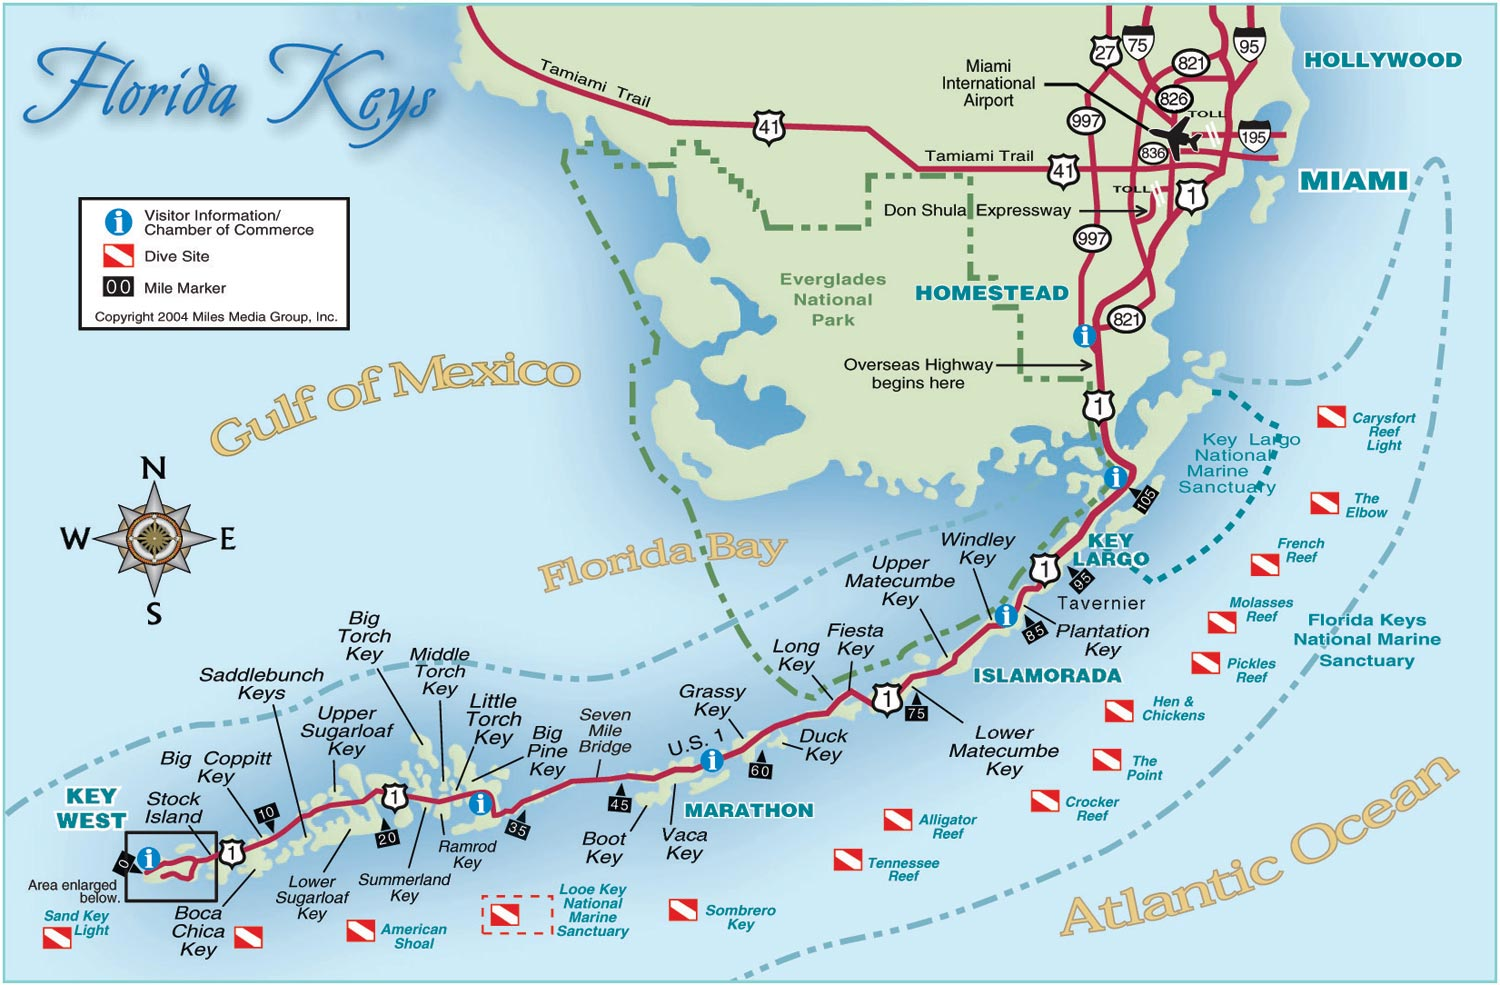 The Florida Keys Real Estate Conchquistador: Keys Map on davenport florida area map, lehigh florida map, st. petersburg florida map, florida everglades map, boca raton florida map, usa map, fort myers florida map, lake toho florida map, knights key florida map, siesta key florida map, bahia honda florida map, big pine key florida map, st. augustine florida map, pascagoula florida map, palm beach florida map, daytona florida map, pc beach florida map, marco island florida map, fort lauderdale florida map, baytown florida map,